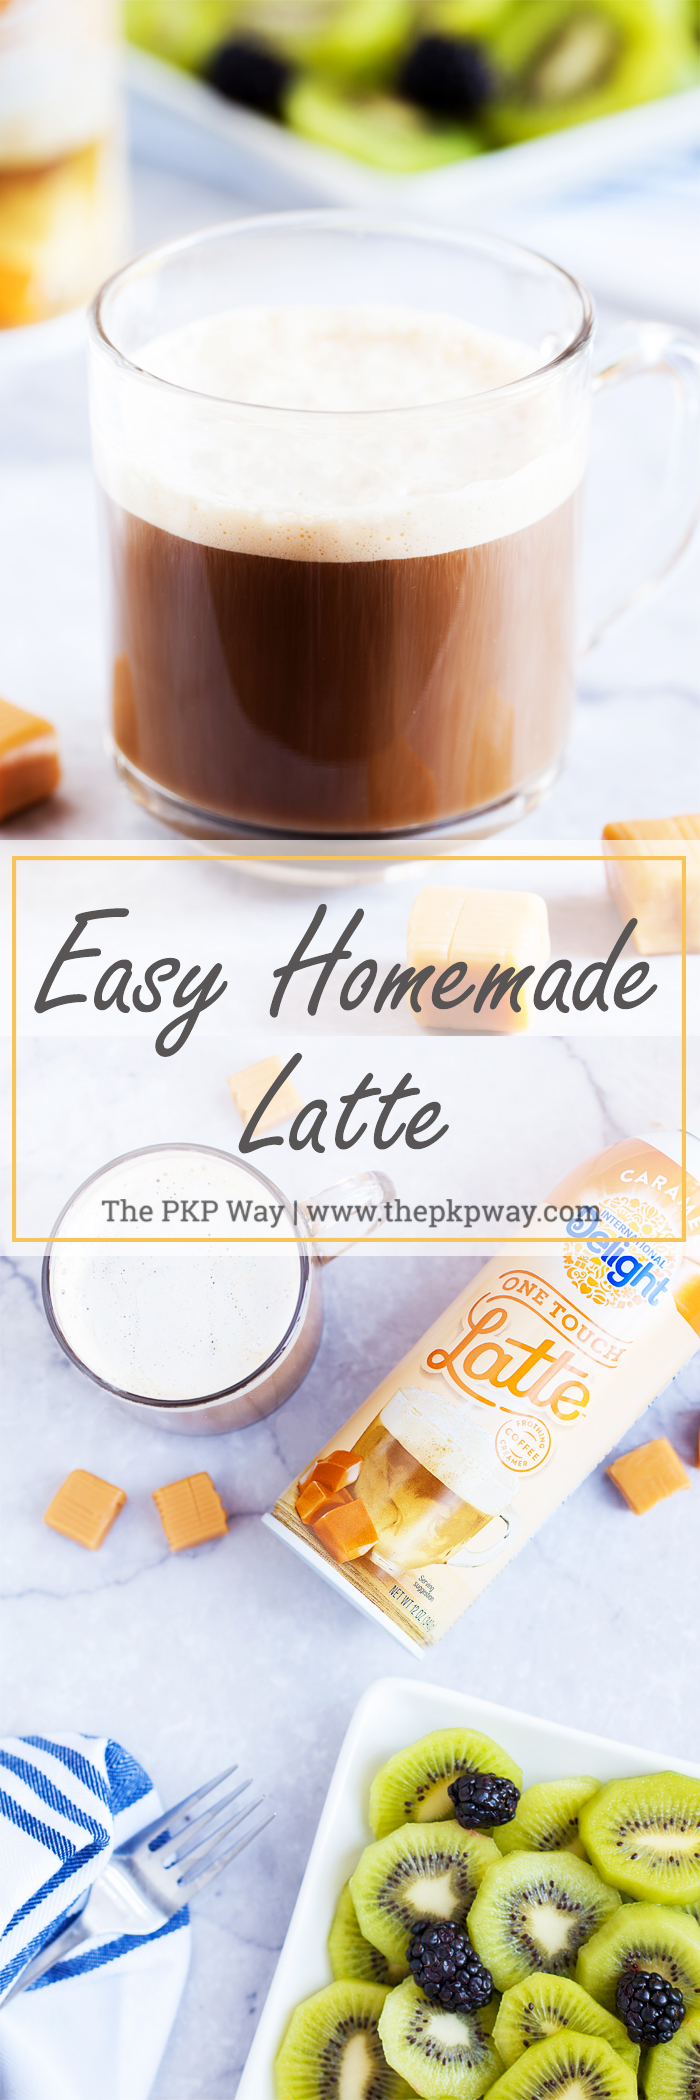 Skip the lines and learn how to make Easy Homemade Latte right in your own kitchen.